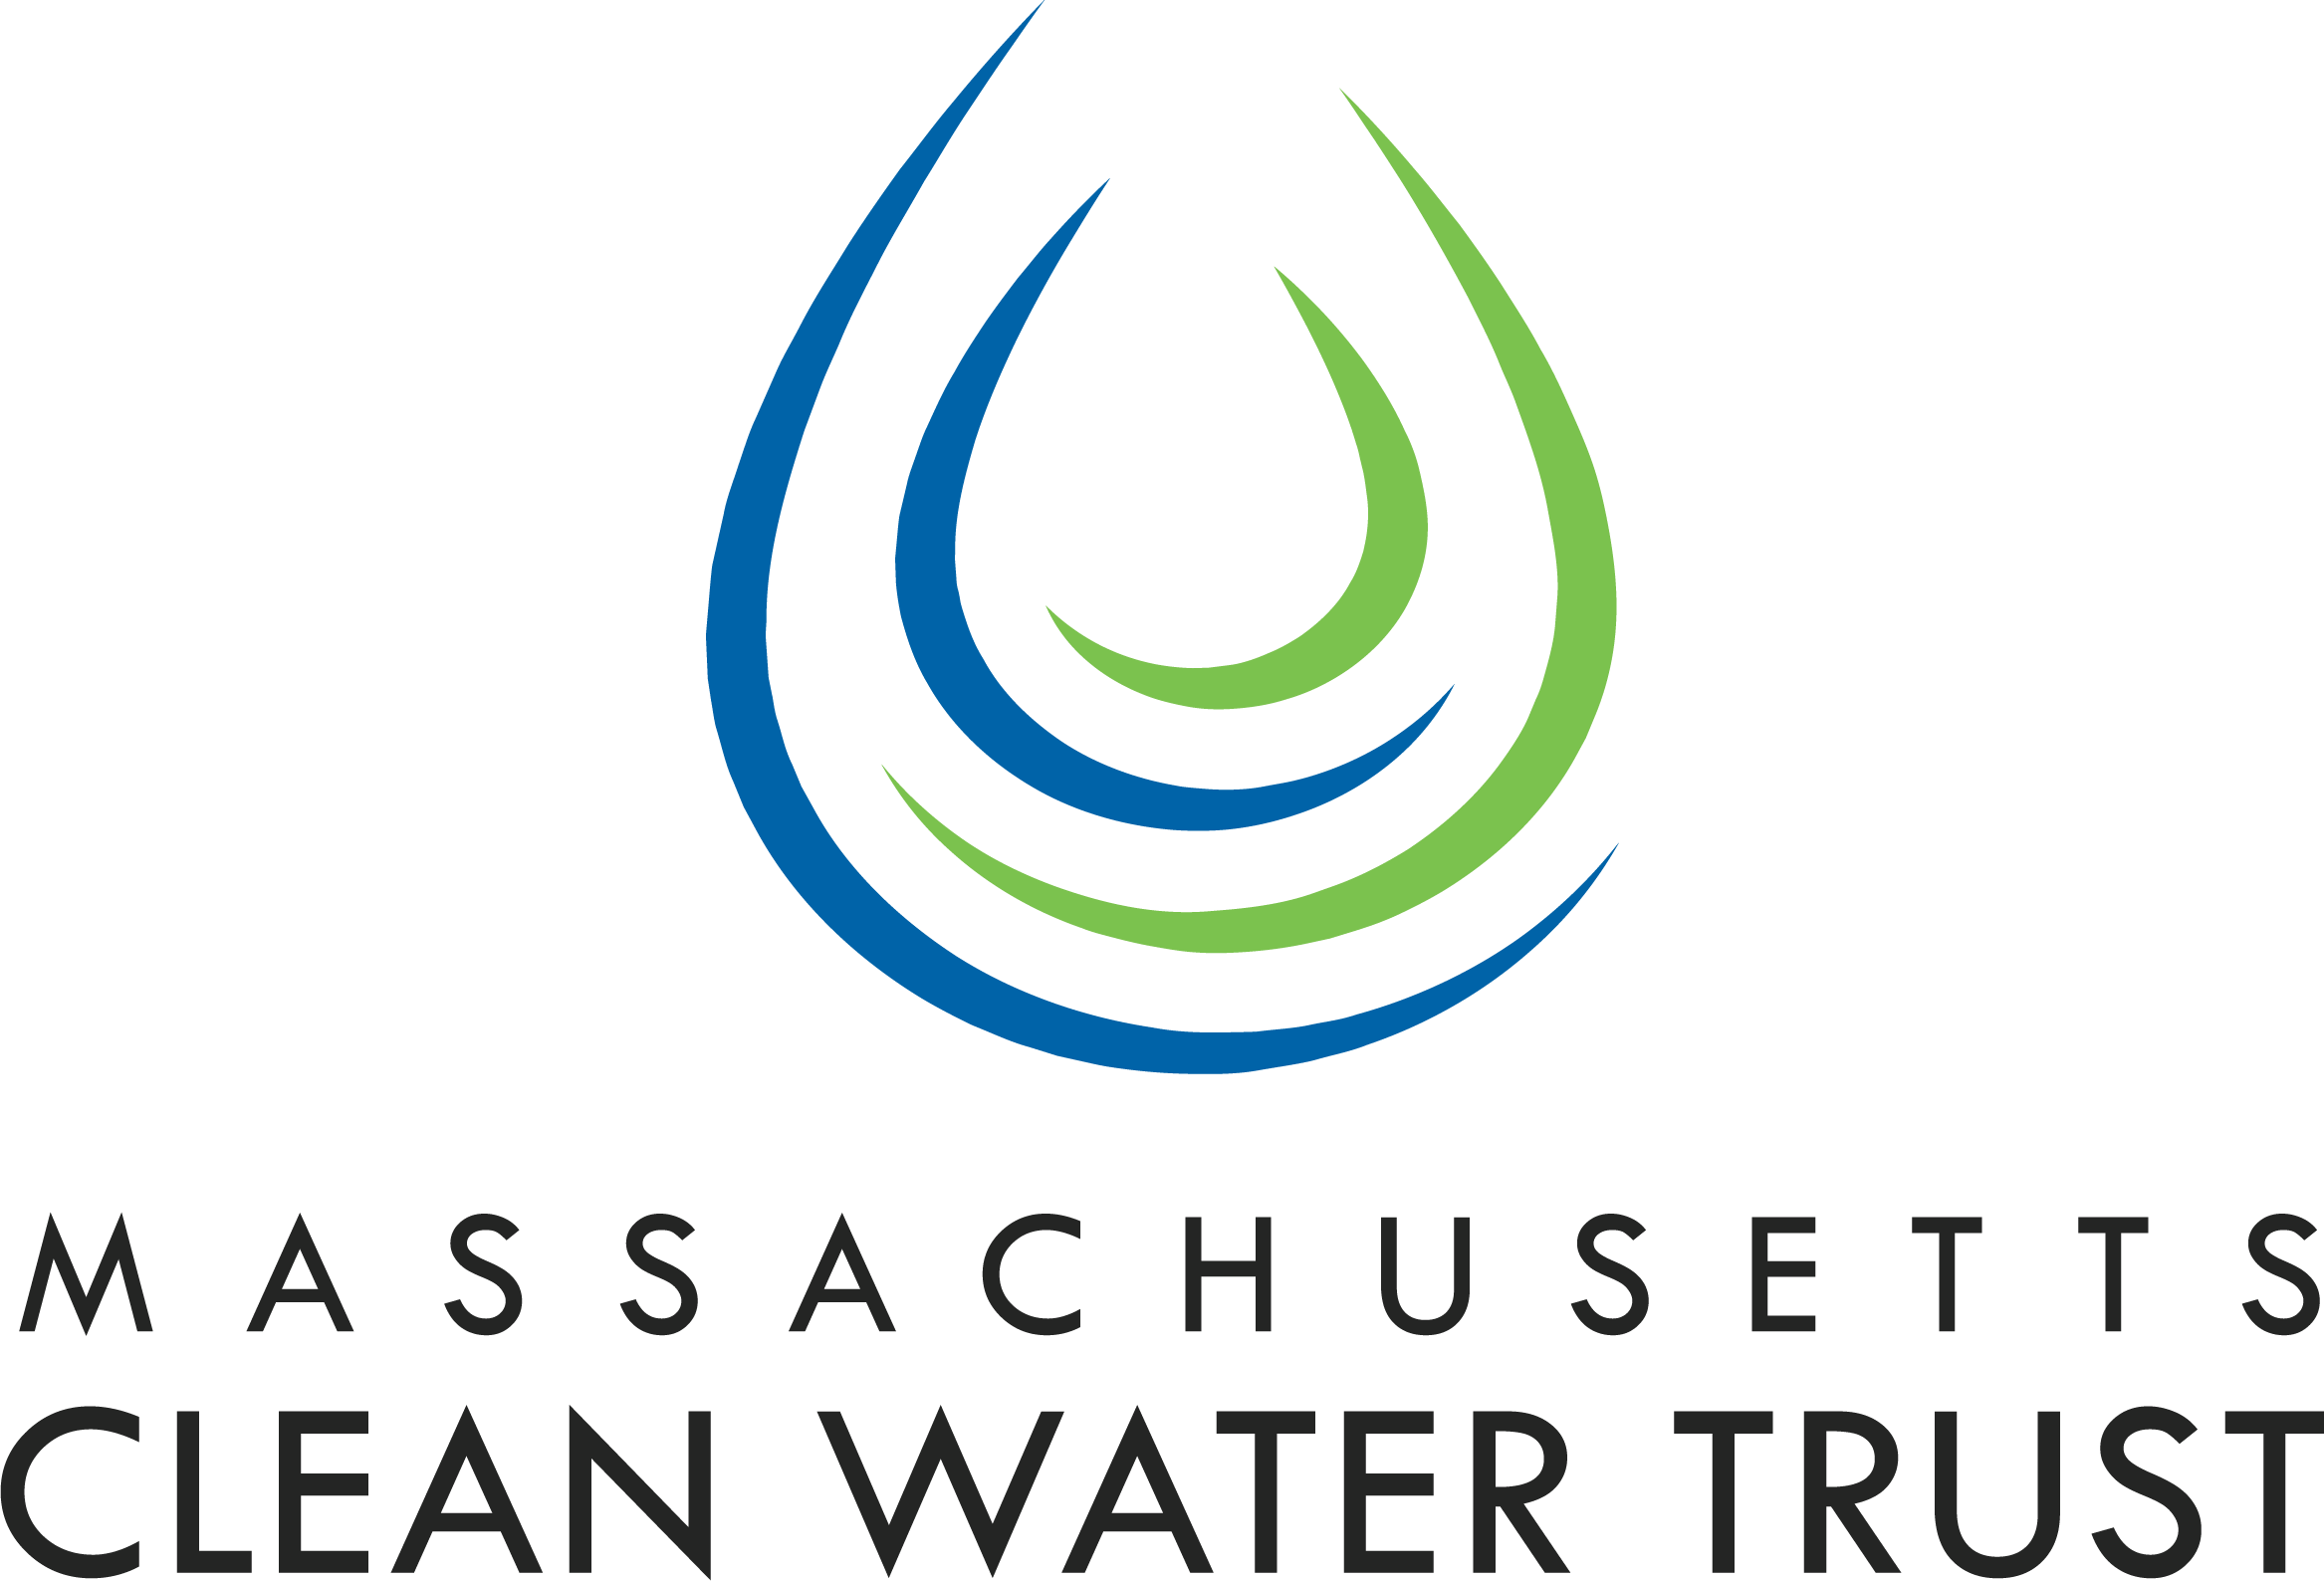 The Massachusetts Clean Water Trust